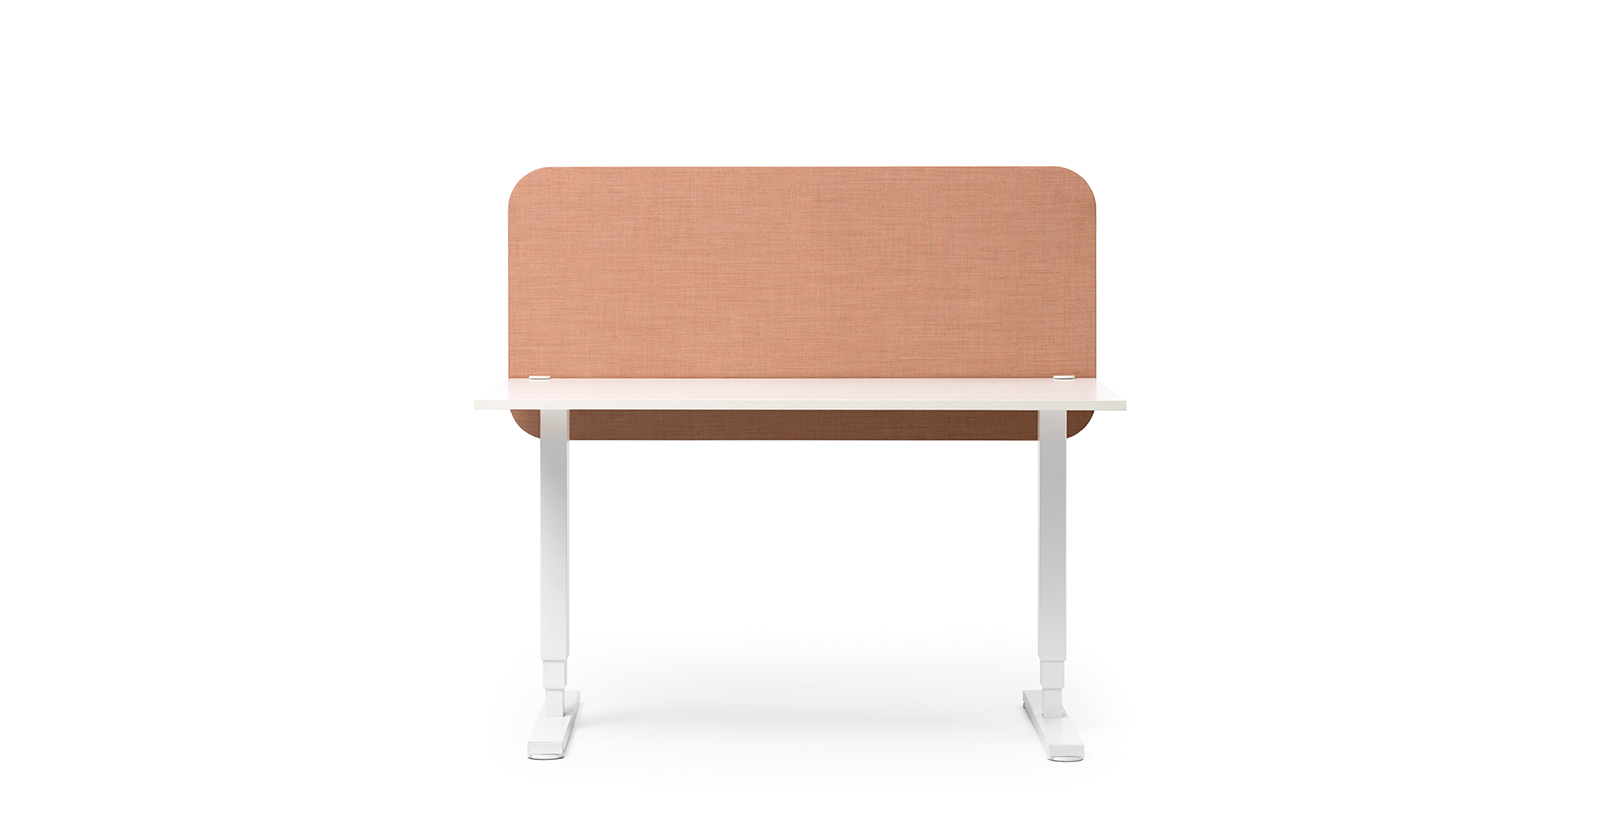 Mezzo table screen